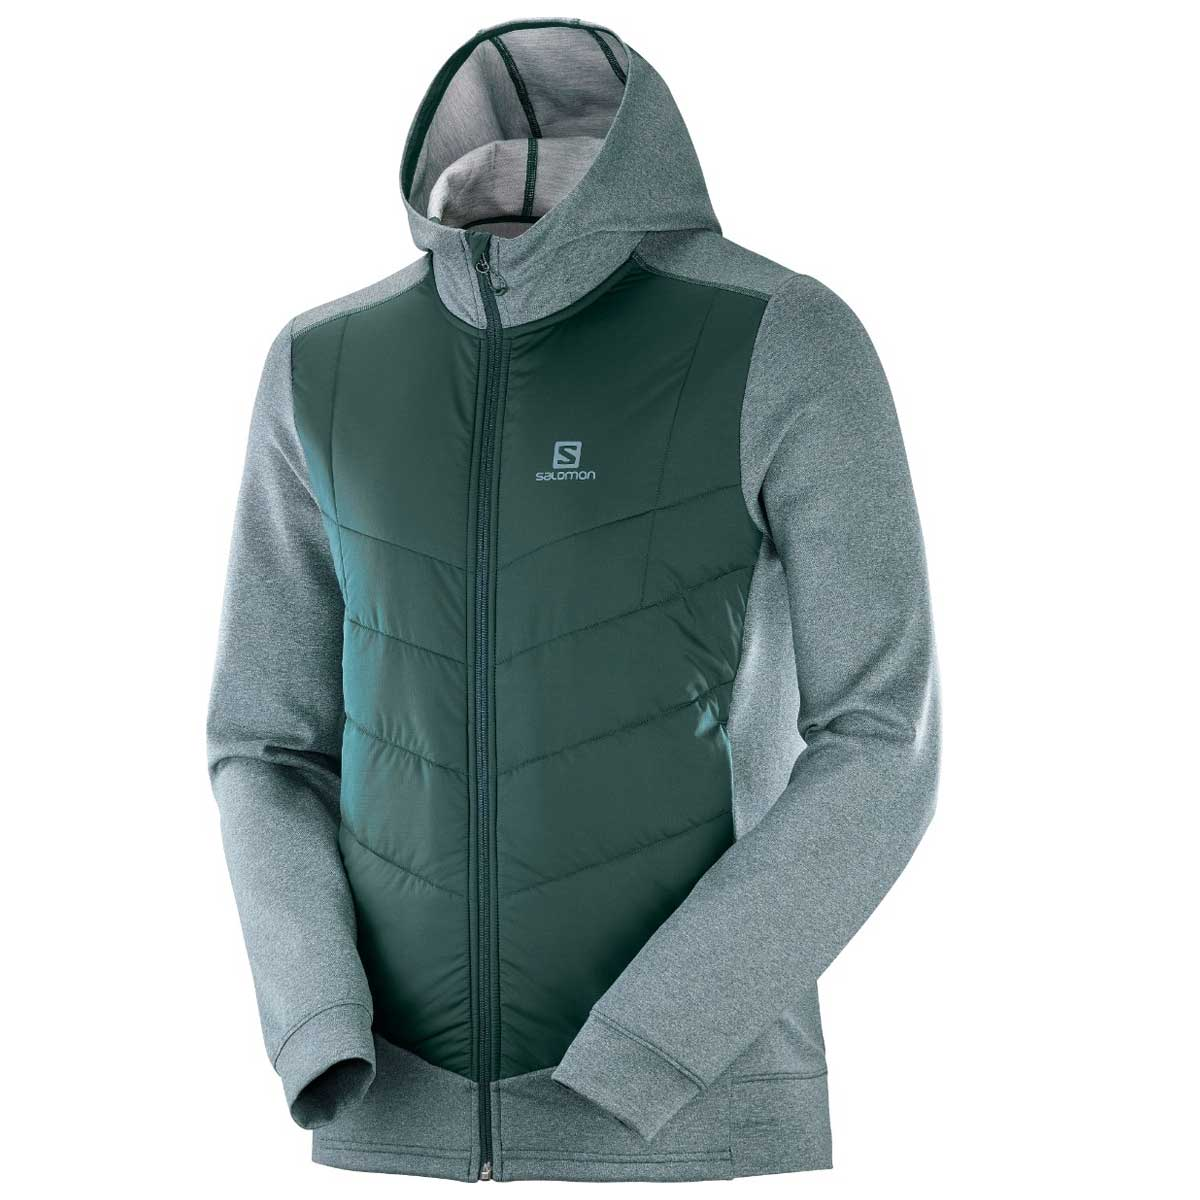 Salomon Men's Pulse Hybrid Hoodie in Green Gables